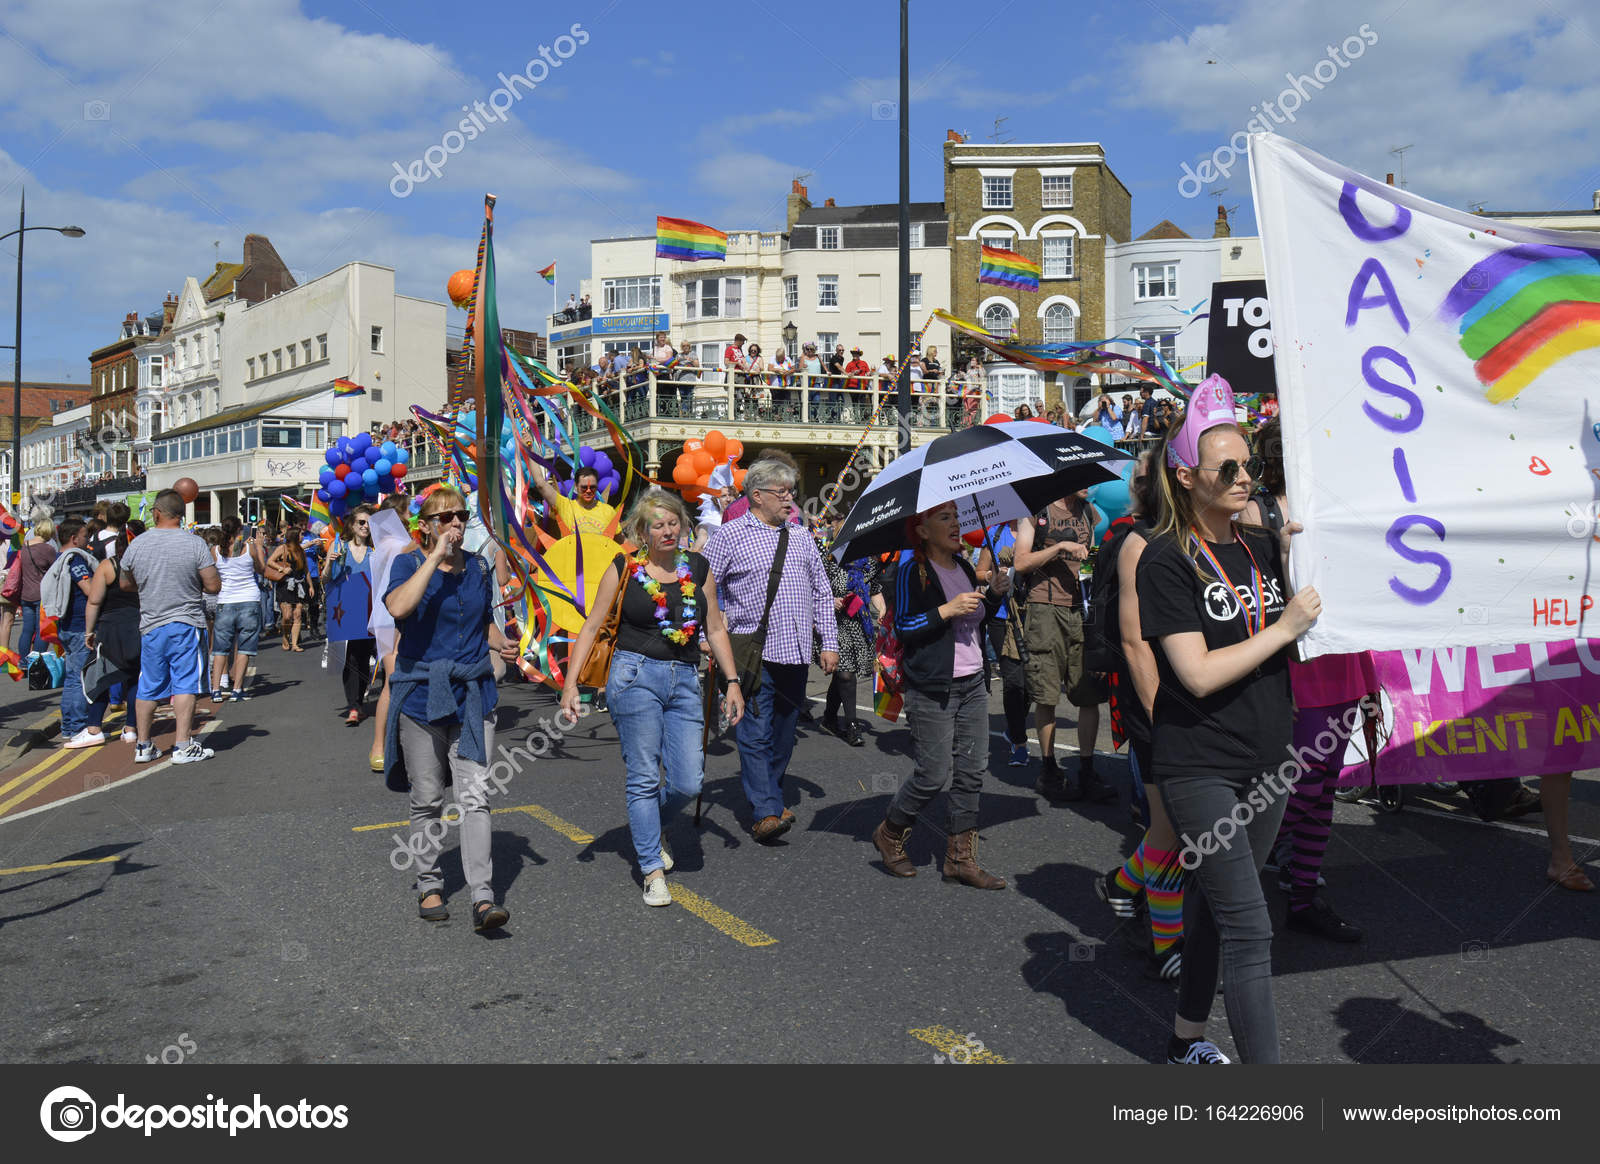 People carrying flags and banners marching in the colourful Gay